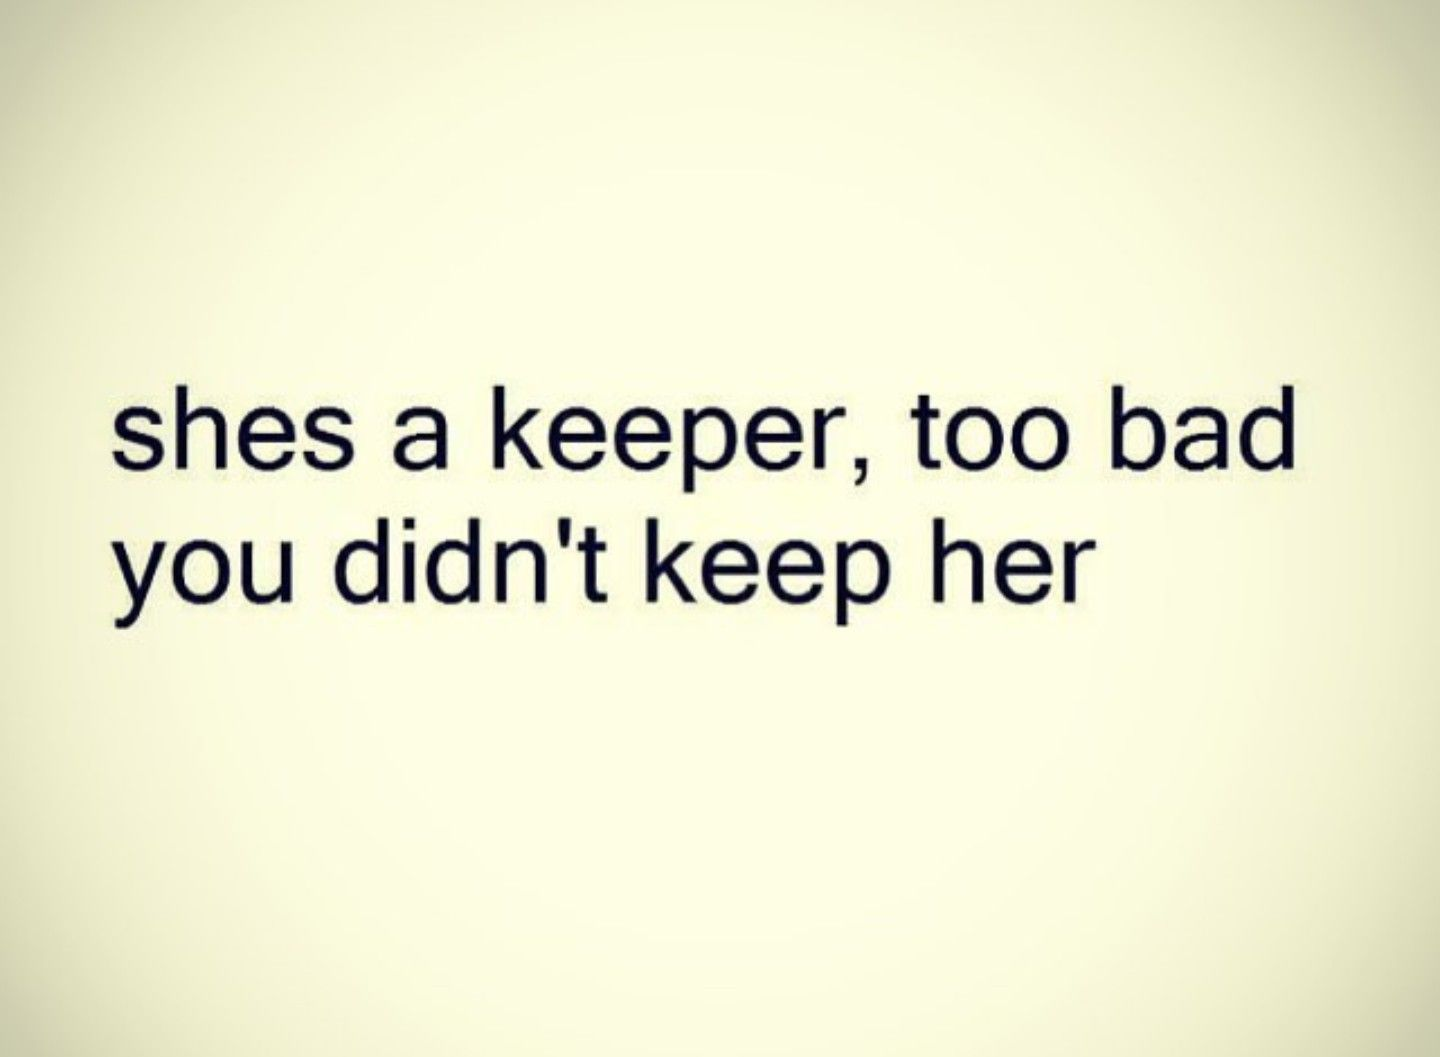 Her Quotes She's A Keeper Too Bad You Didn't Keep Her  Quotes  Pinterest